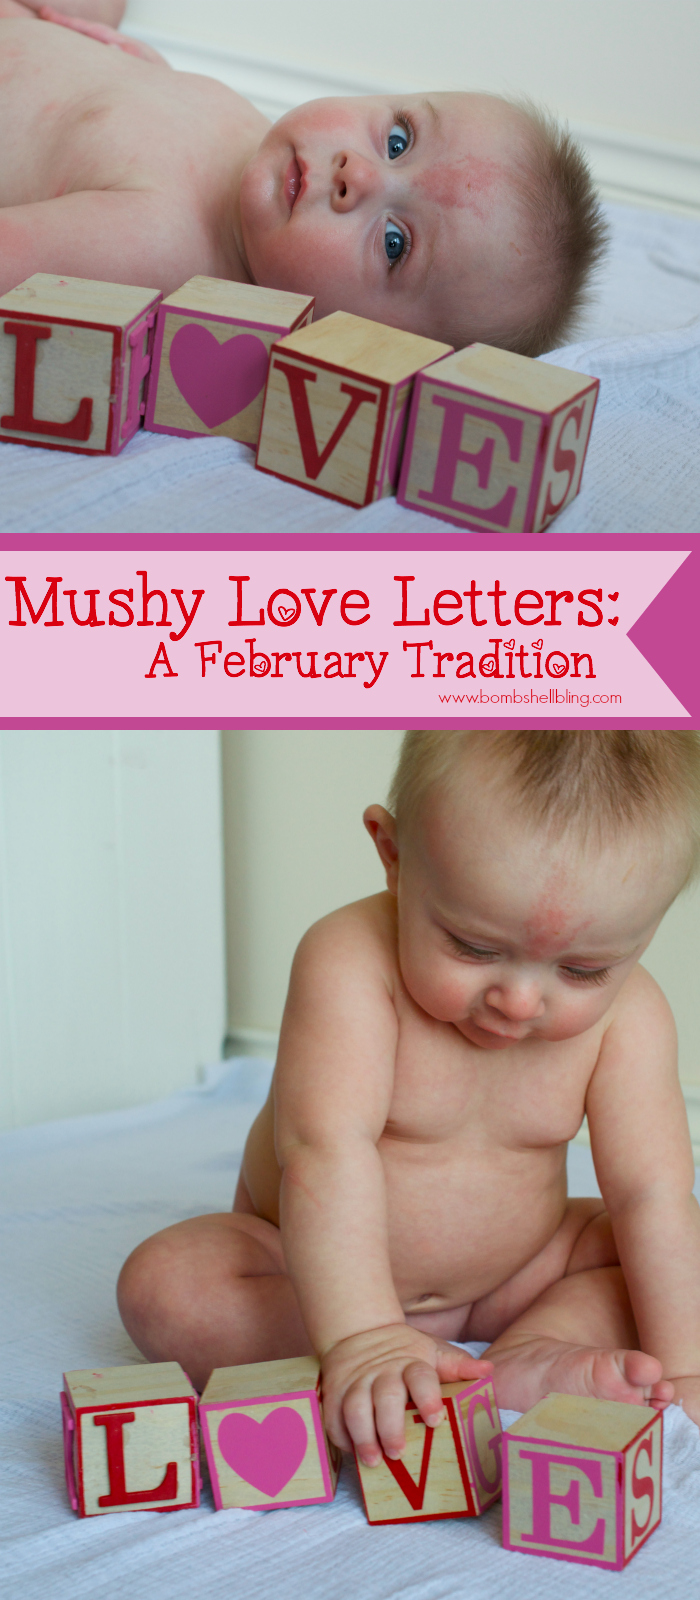 Writing mushy love letters to your children can be a simple, but beautiful and meaningful Valentine's Day tradition!